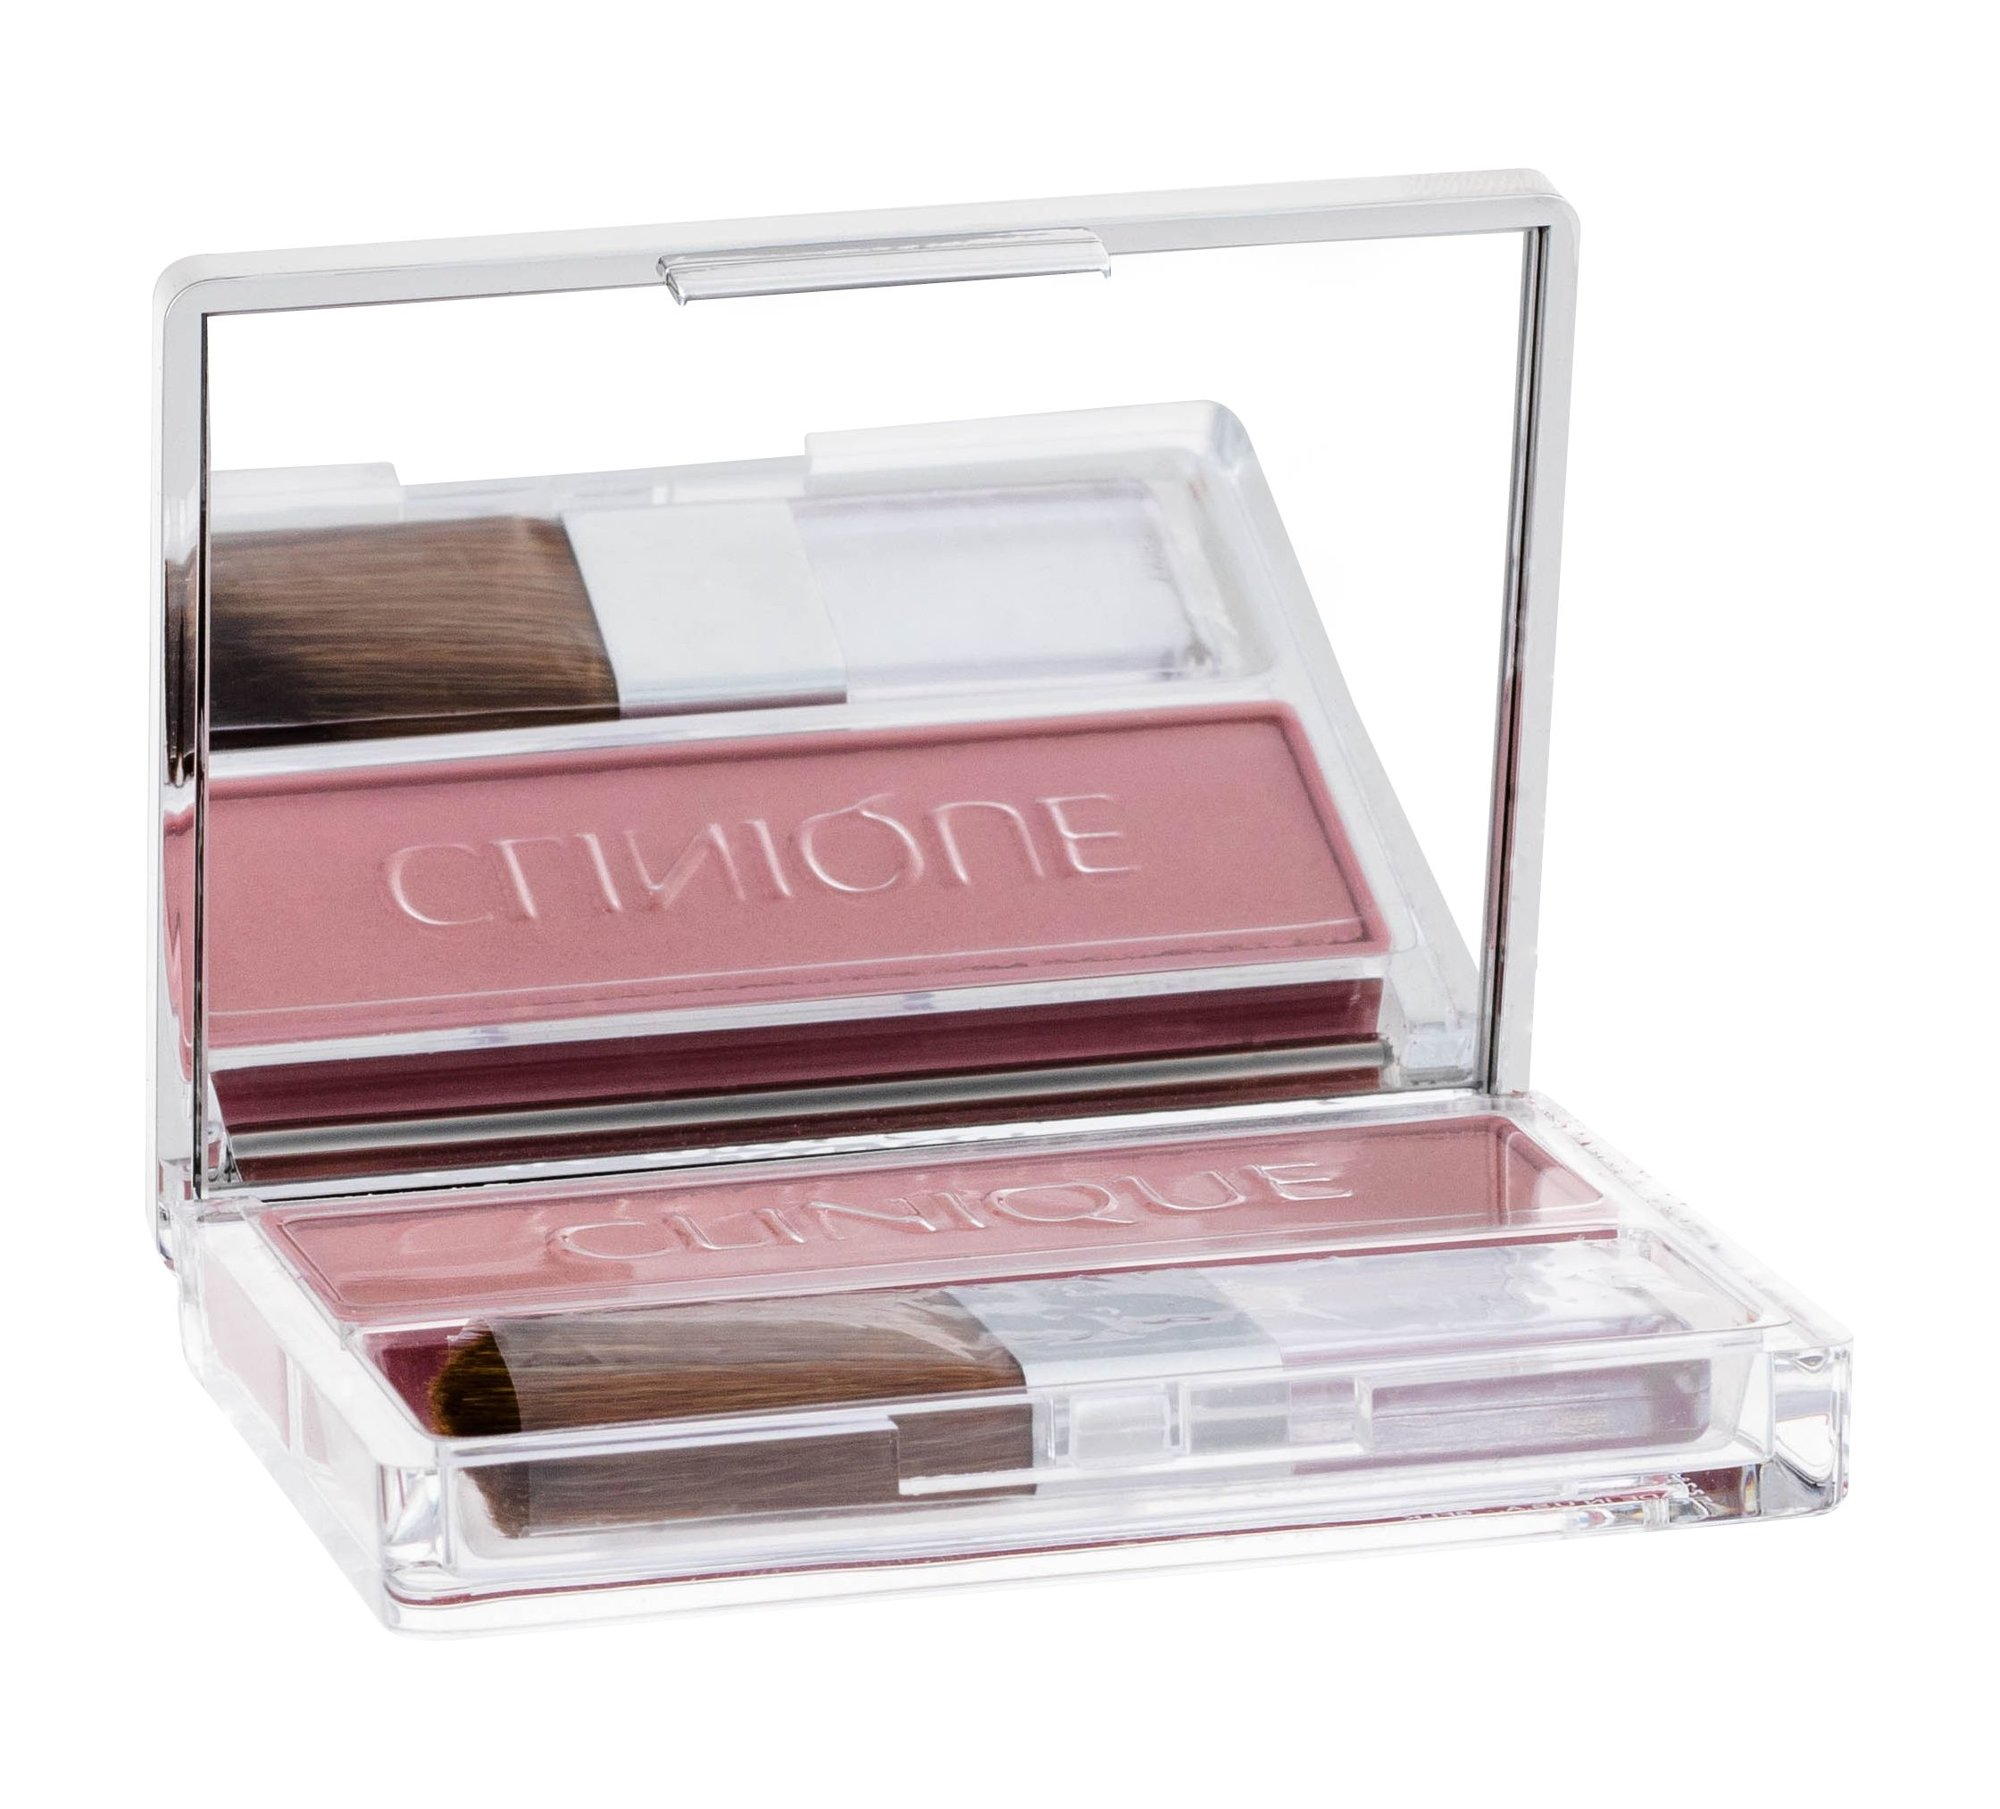 Clinique Blushing Blush Cosmetic 6ml 115 Smoldering Plum